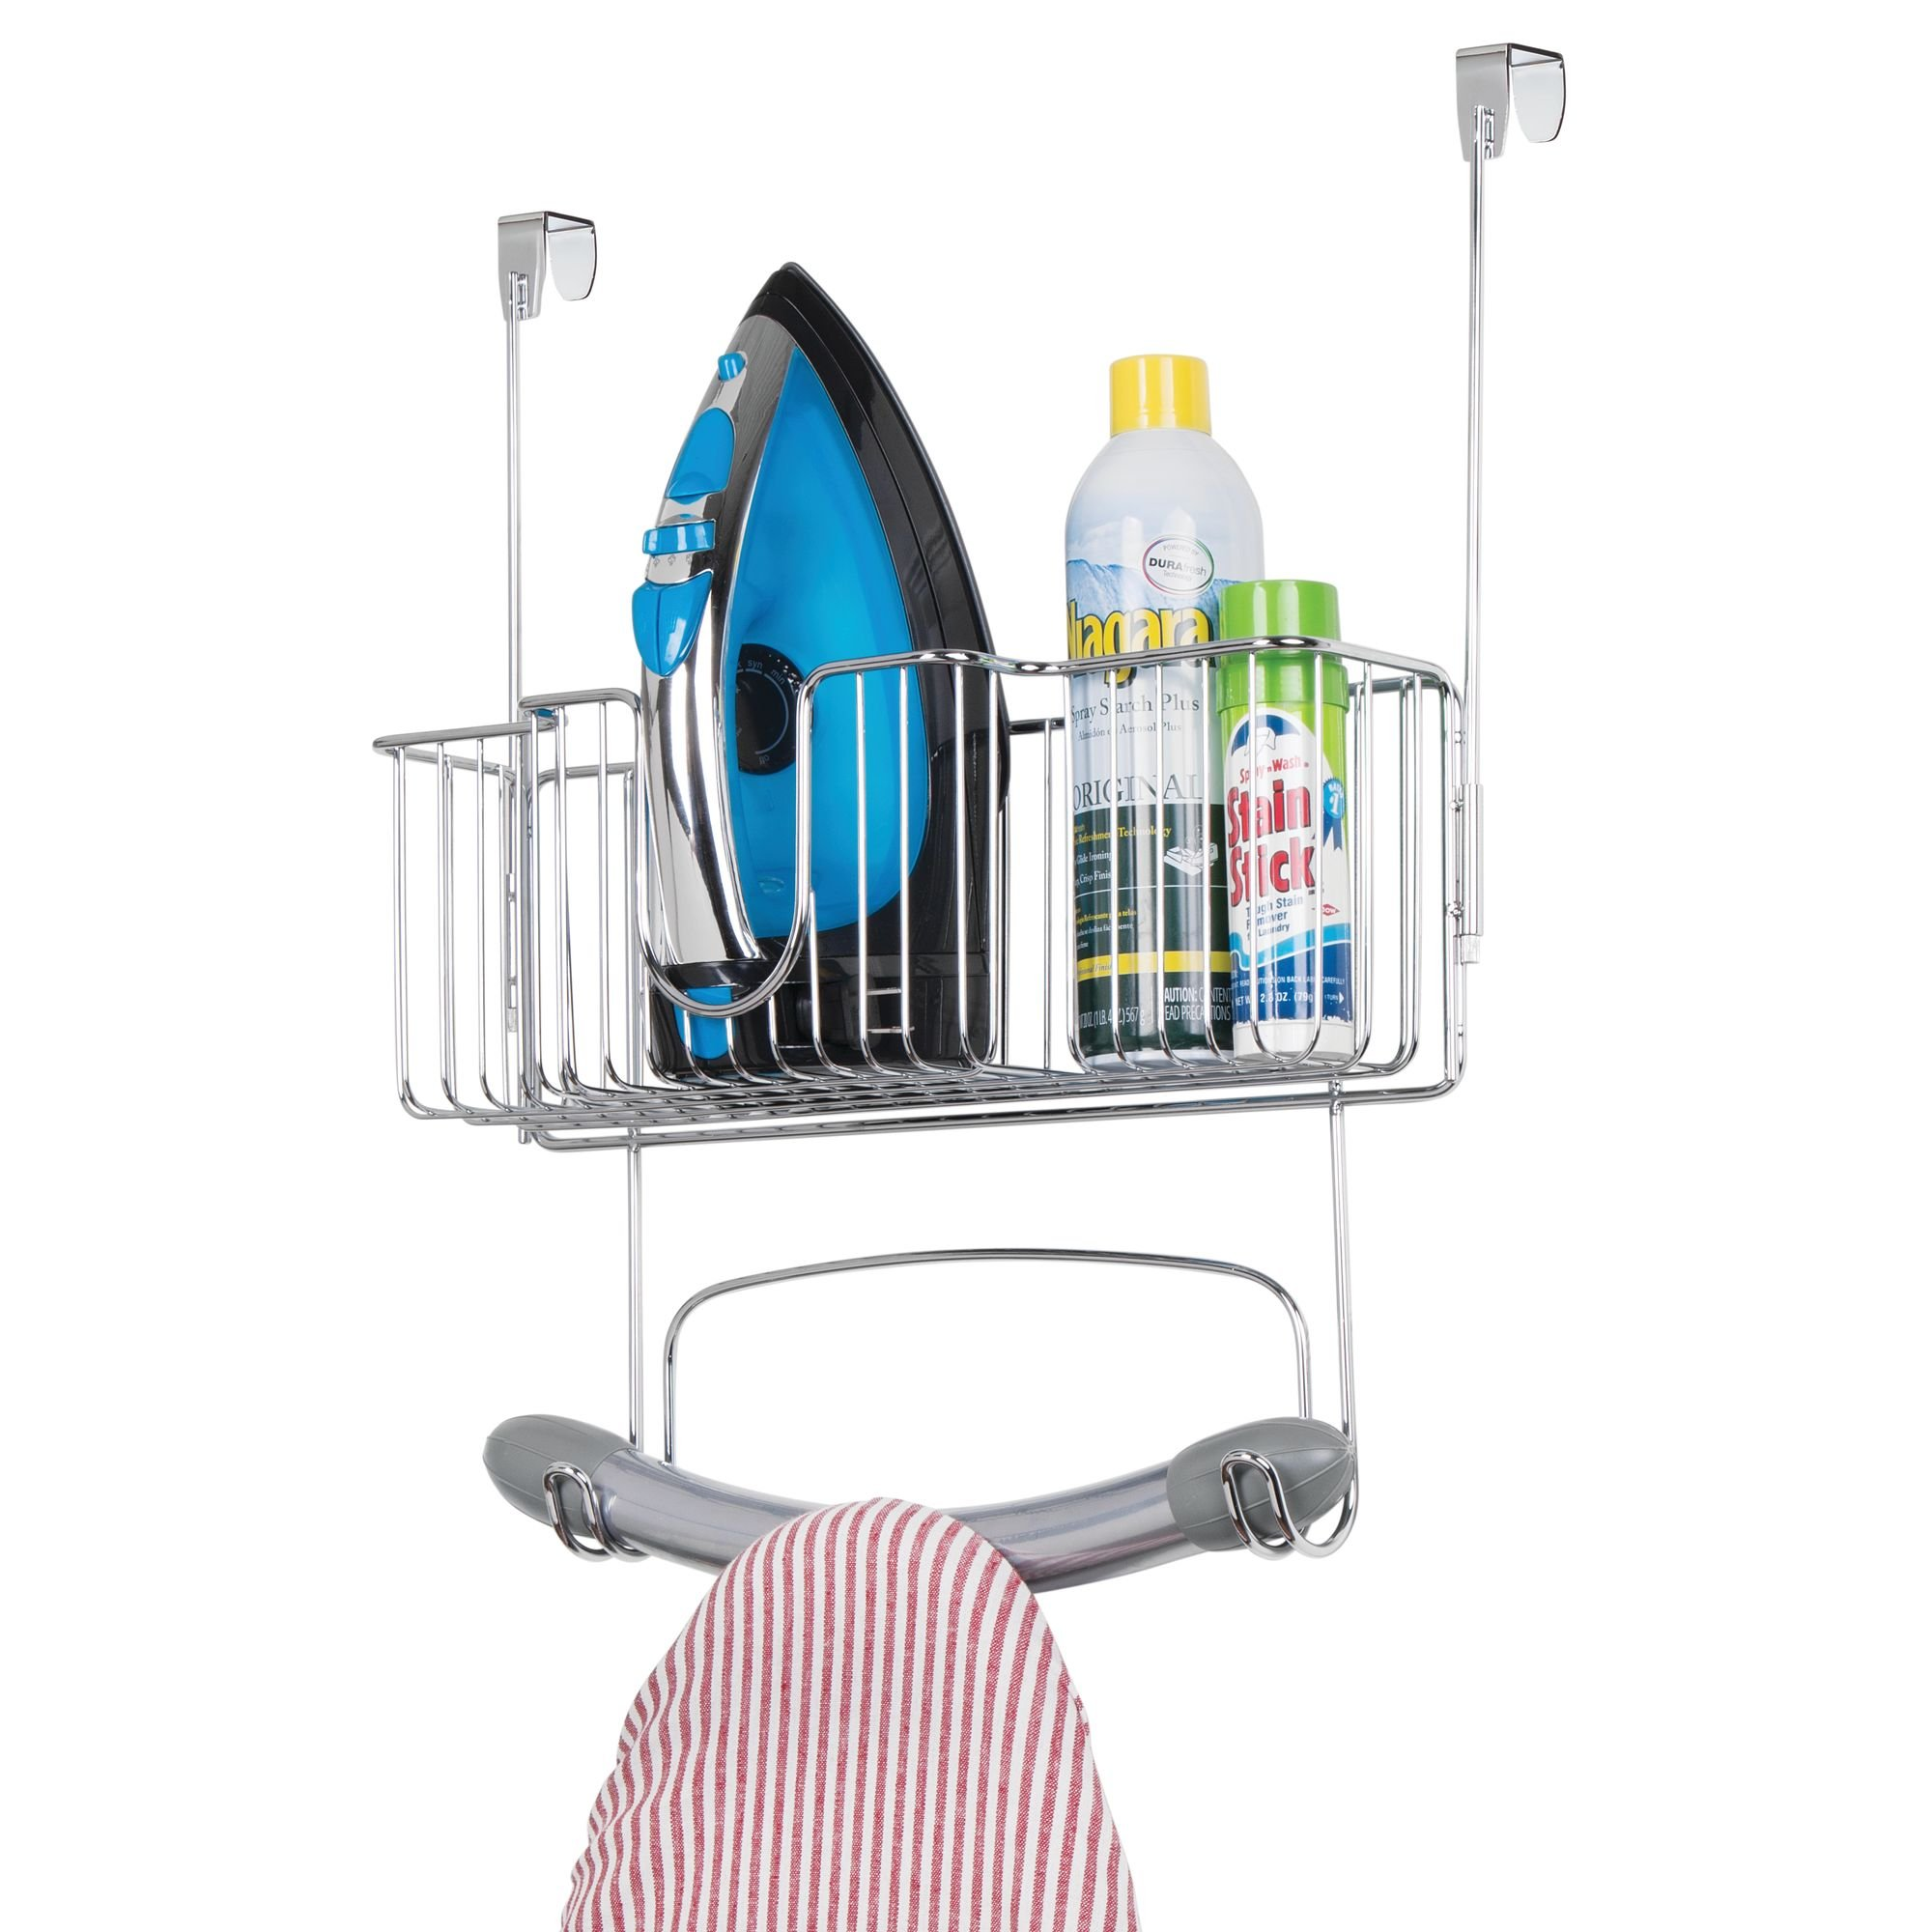 mDesign Over Door Hangin Ironing Board Holder with Large Storage Basket - Holds Iron, Board, Spray Bottles, Starch, Fabric Refresher for Laundry Rooms - Durable Steel, Chrome